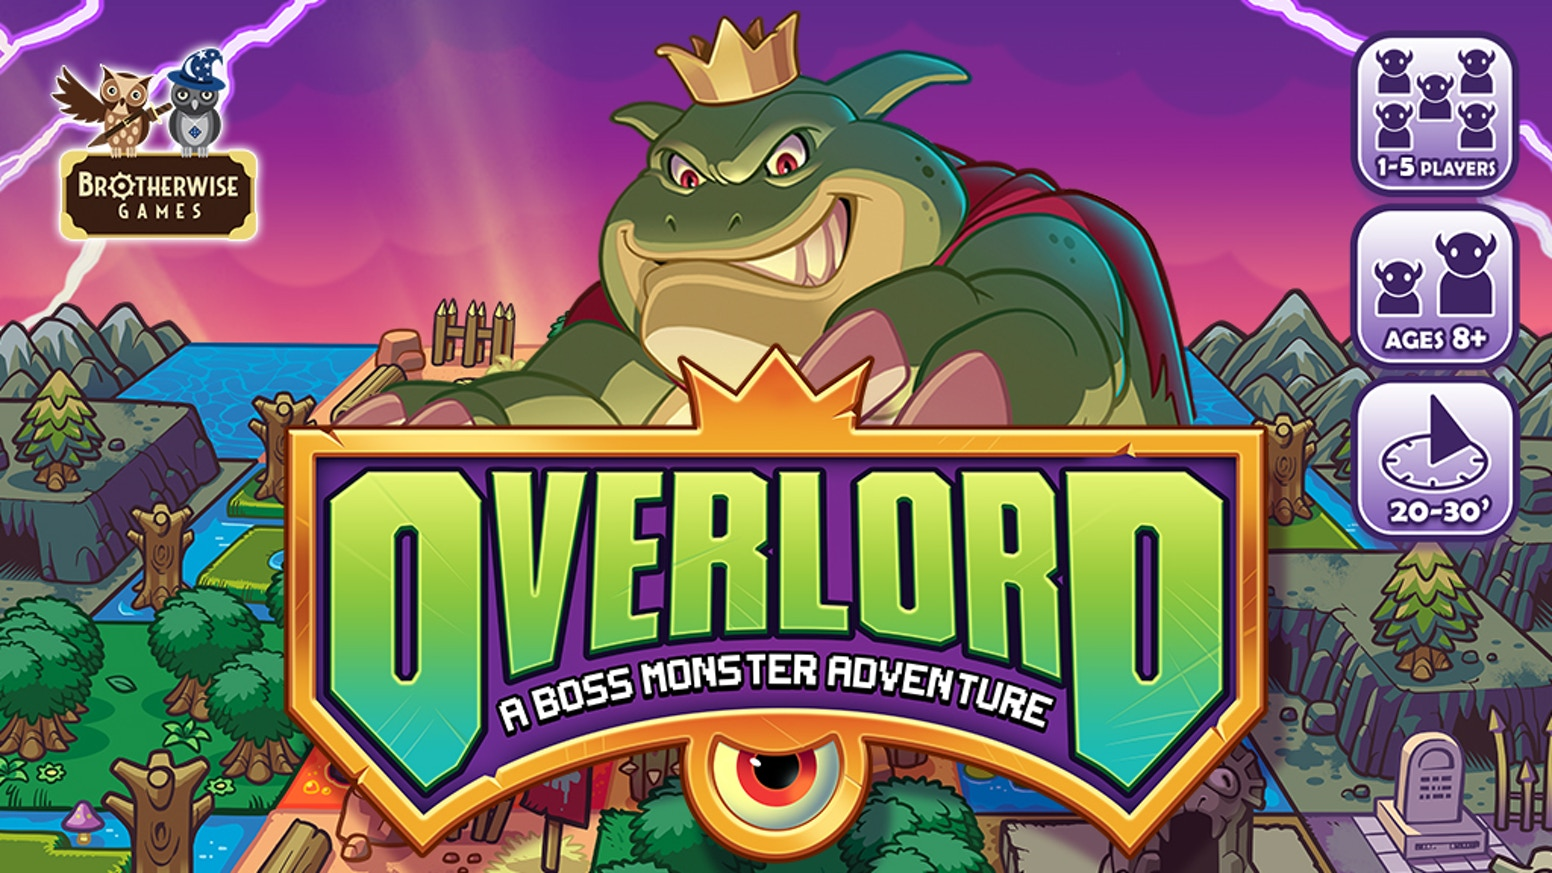 It's not too late to pledge! Become a villain in this retro-inspired board game. Draft terrain tiles, recruit monsters, build your map, and become the Overlord!